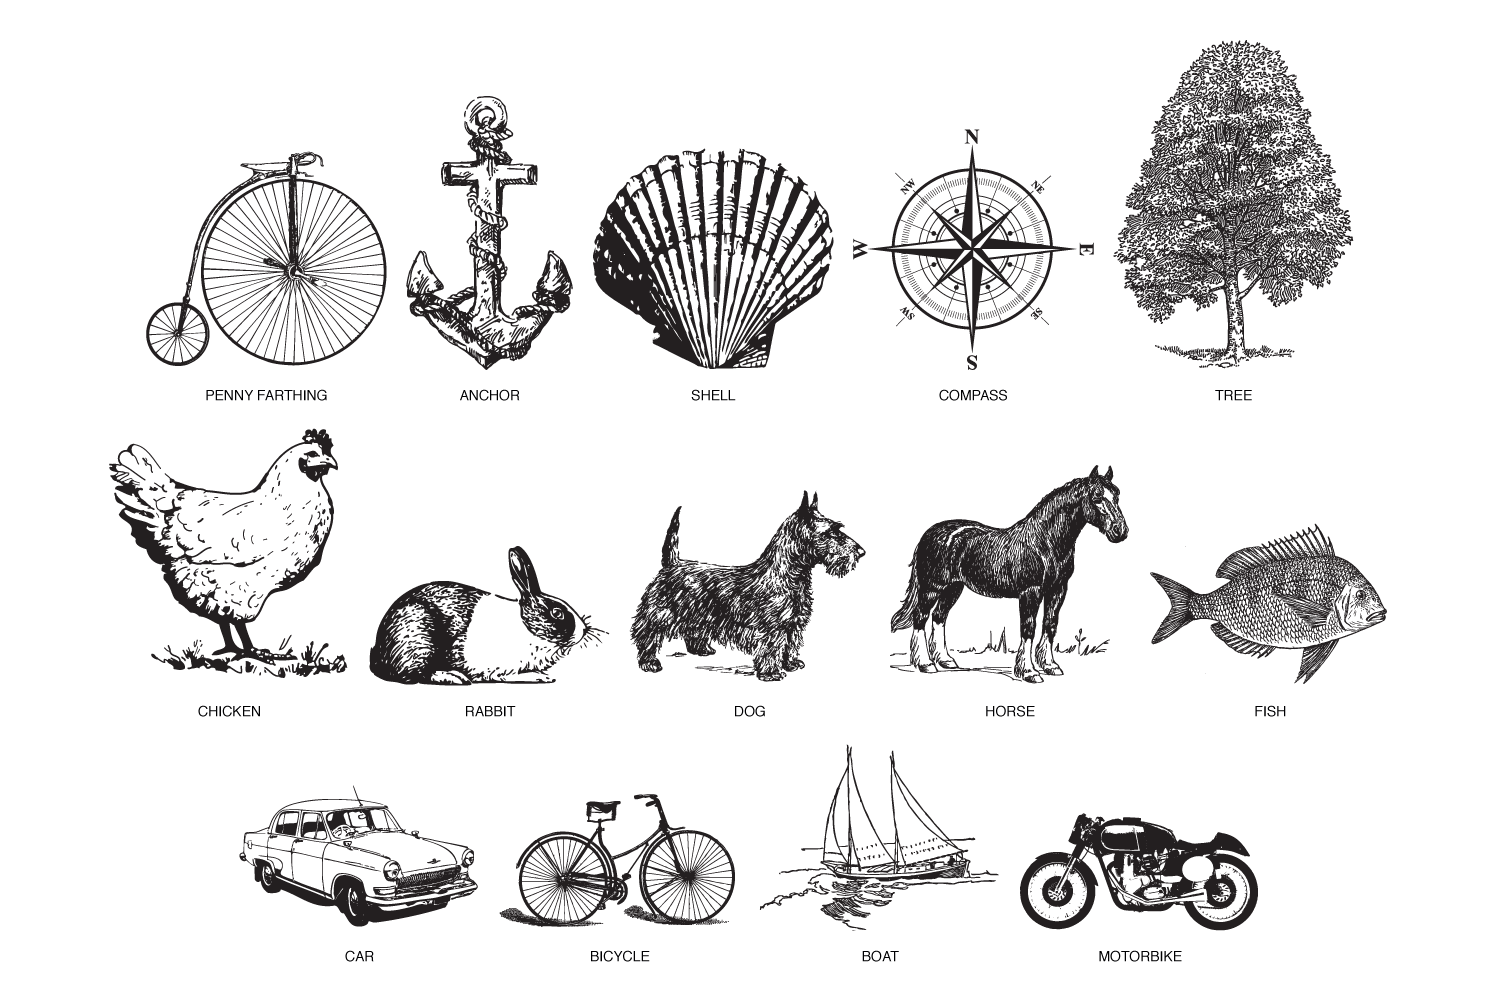 Personalised leather phone case cover illustrations, penny farthing, anchor, shell, compass, tree, chicken, rabbit, dog, horse, fish, car, bicycle, boat, motorbike